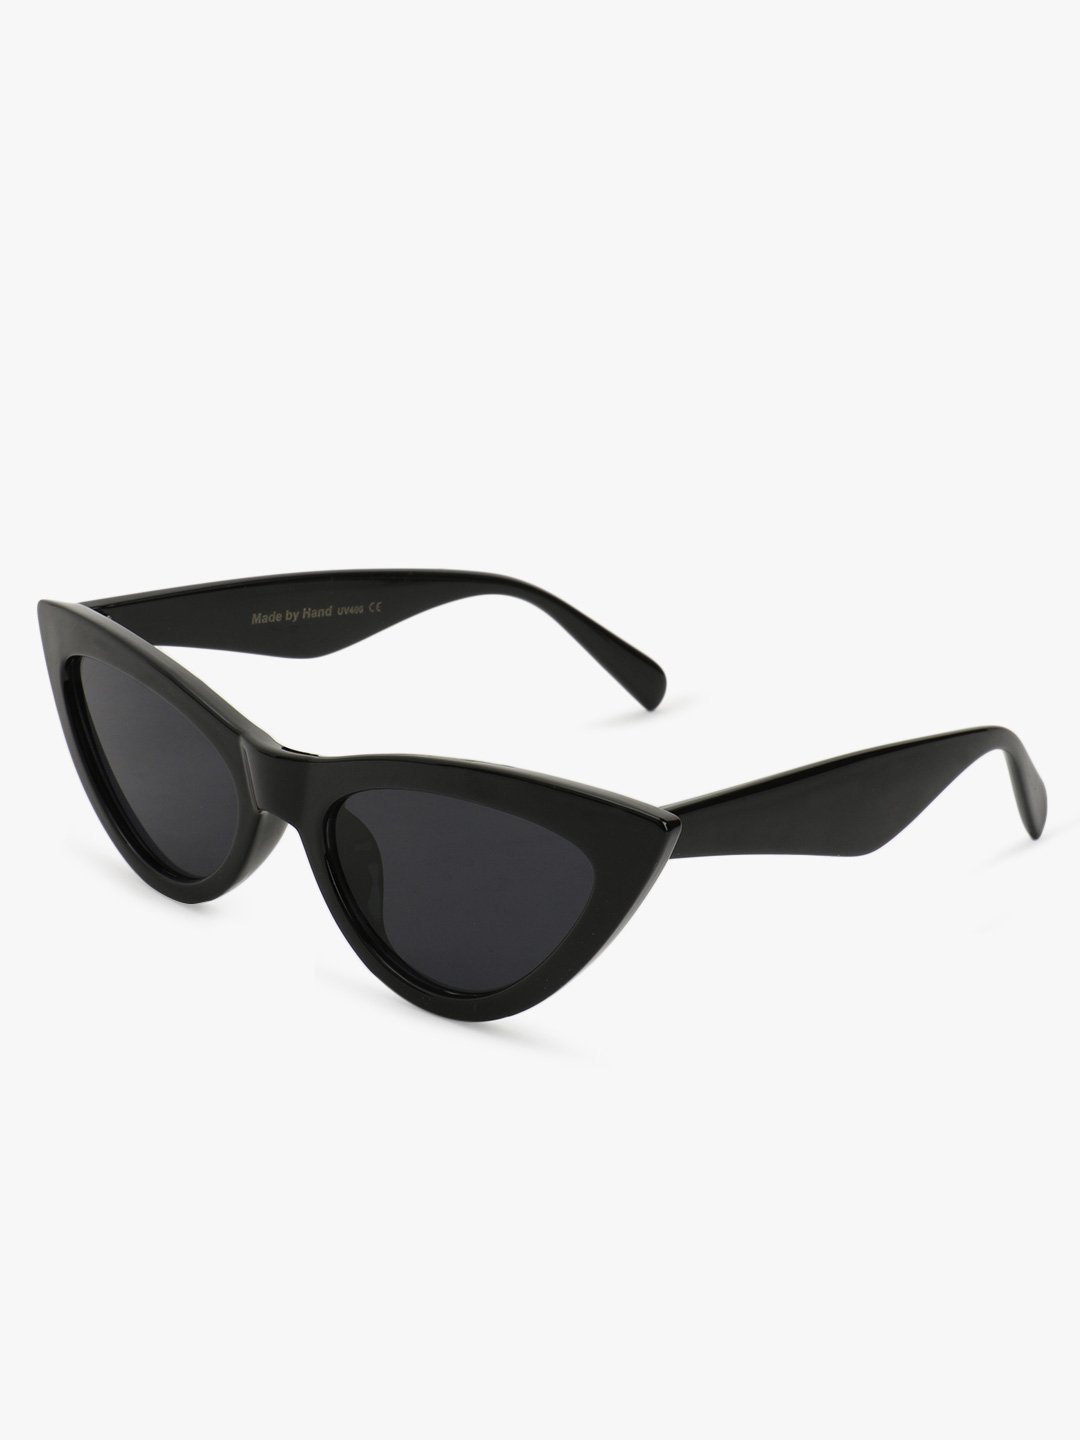 Sneak-a-Peek Black Cateye Sunglasses 1